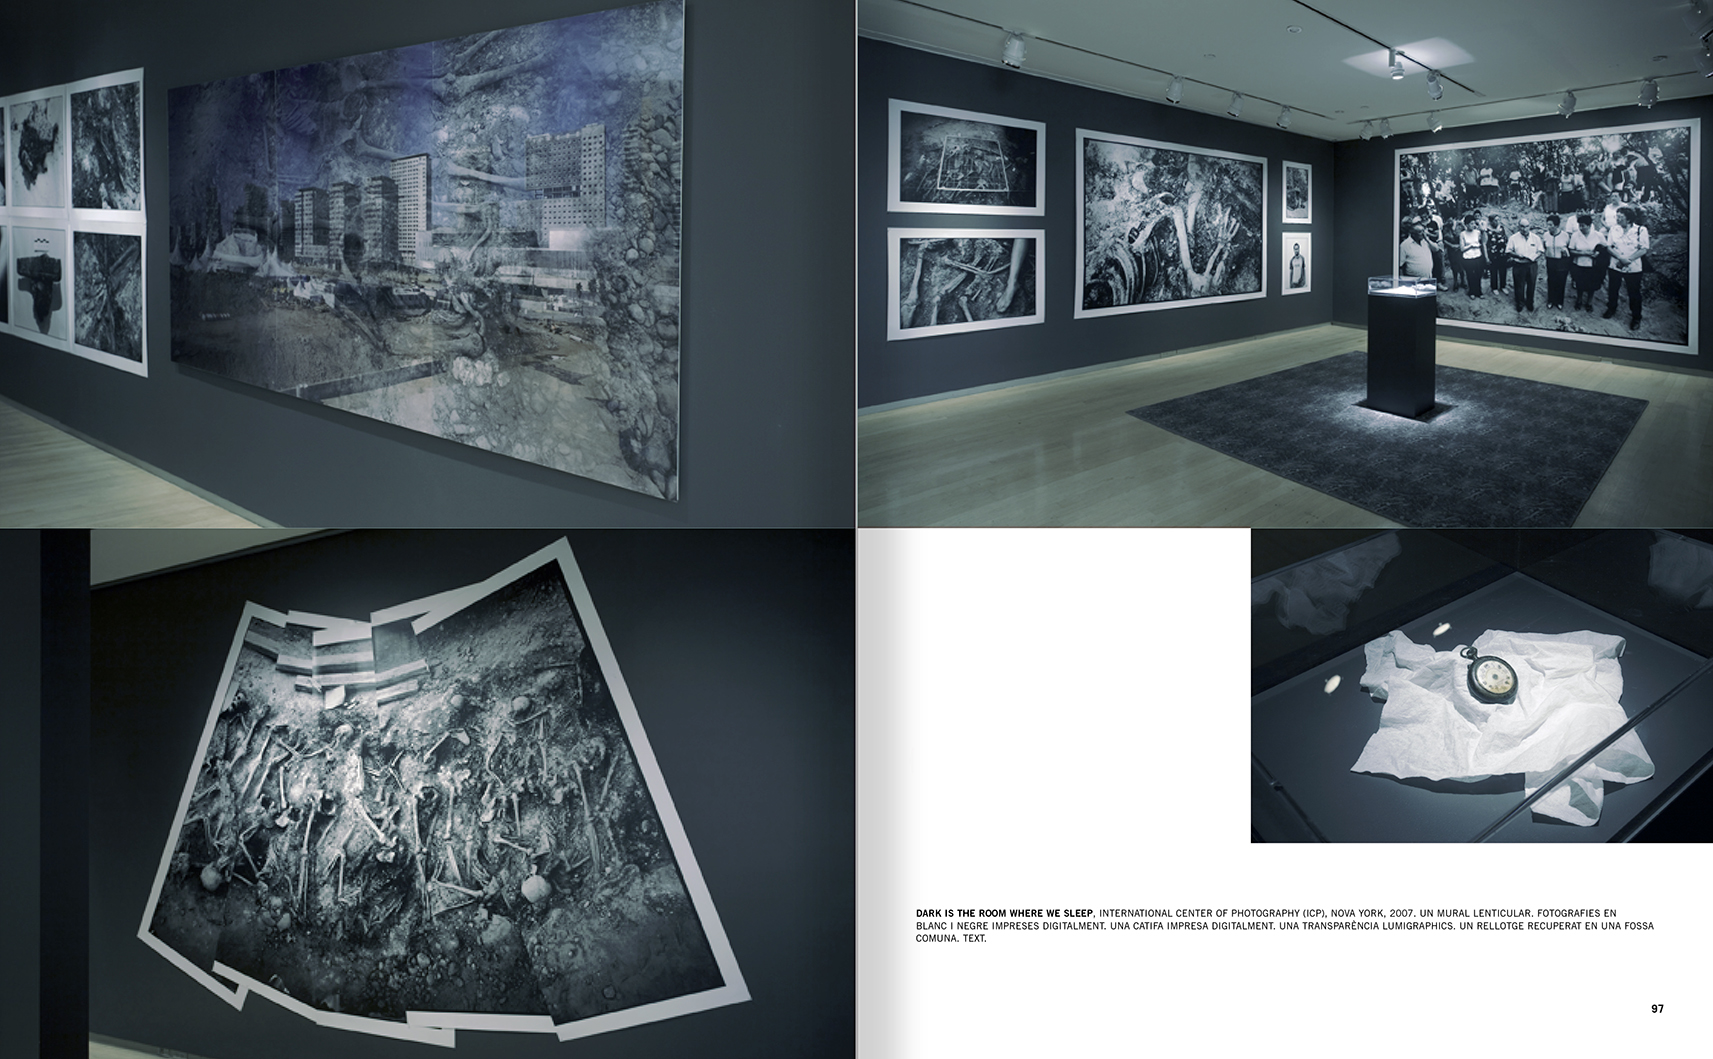 Selection from the catalogue 'Francesc Torres. Da capo', pages 96 and 97